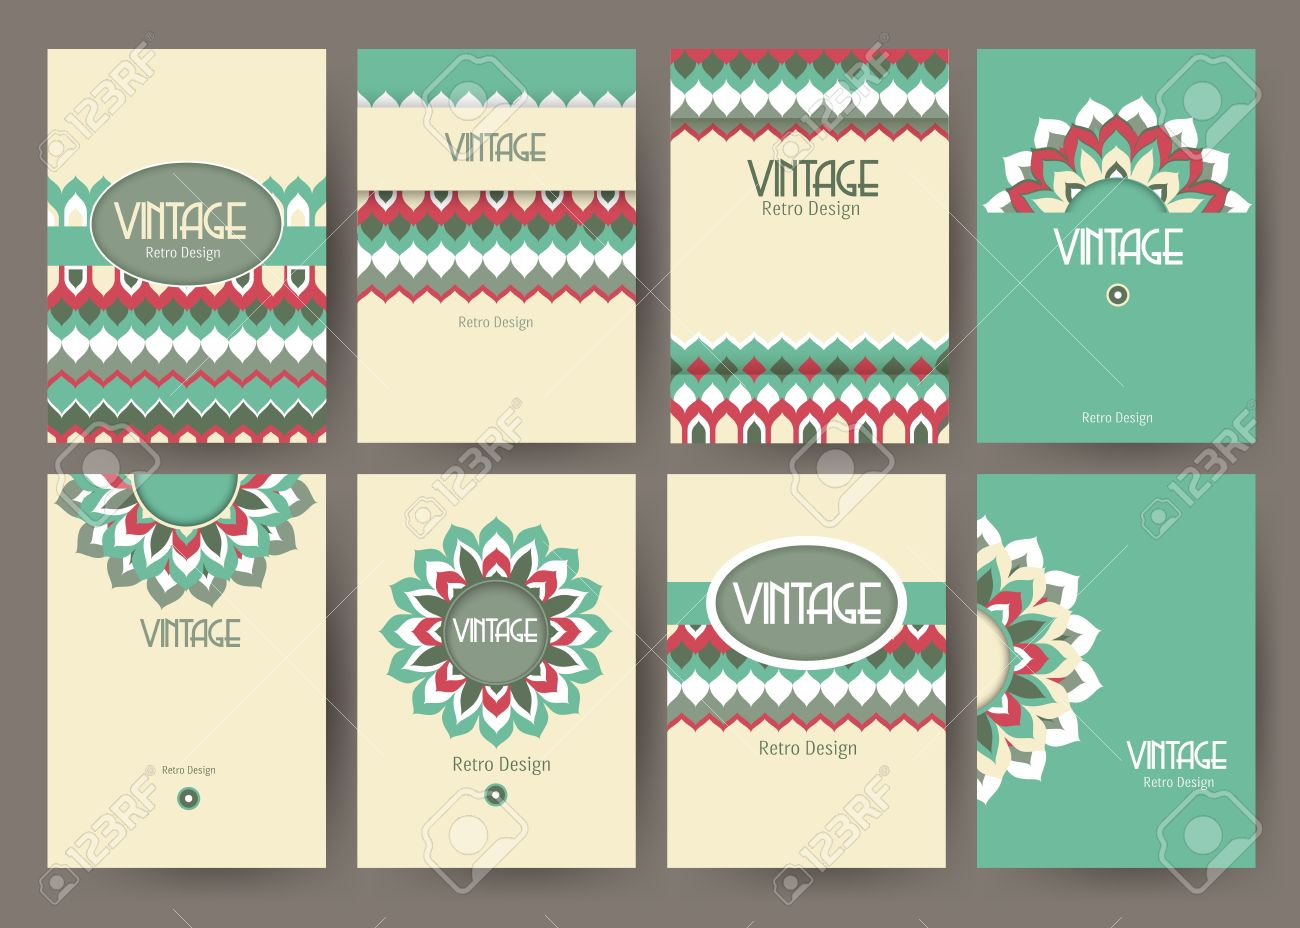 Poster design free template - Set Of Creative Vintage Card Templates Best Creative Hand Made Design For Poster Placard